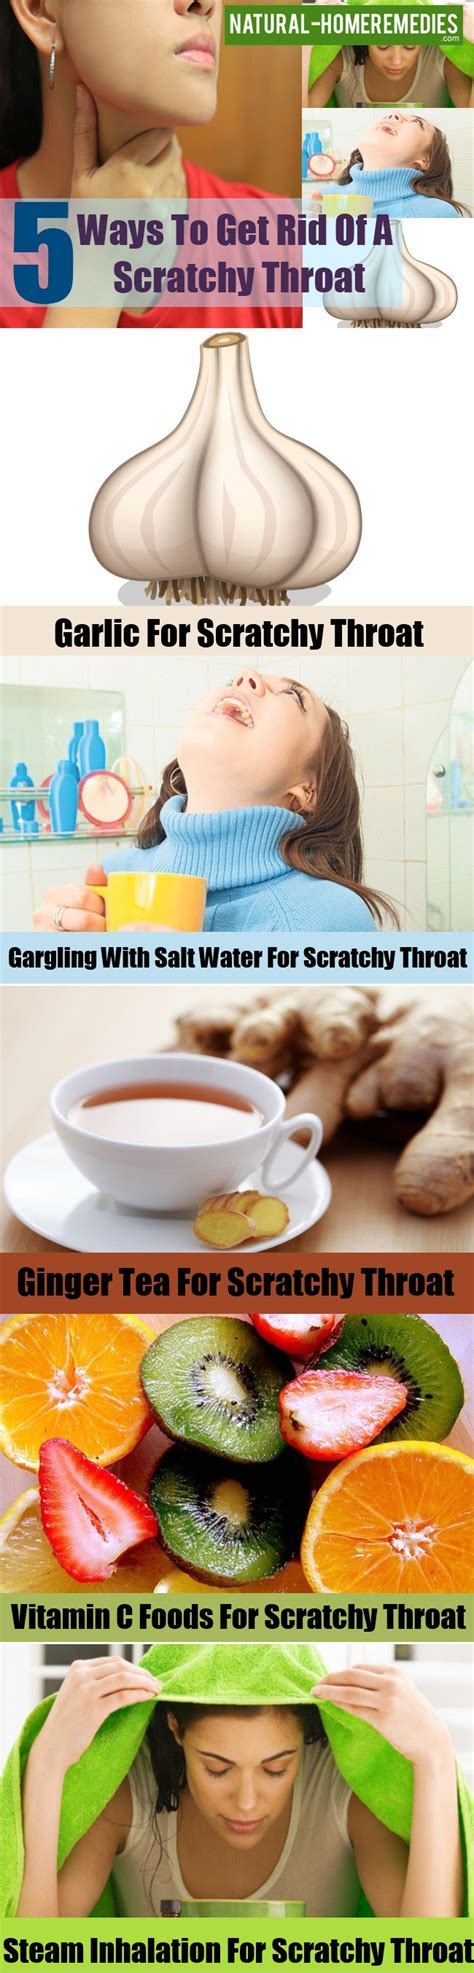 5 ways to get rid of a scratchy throat home remedies for